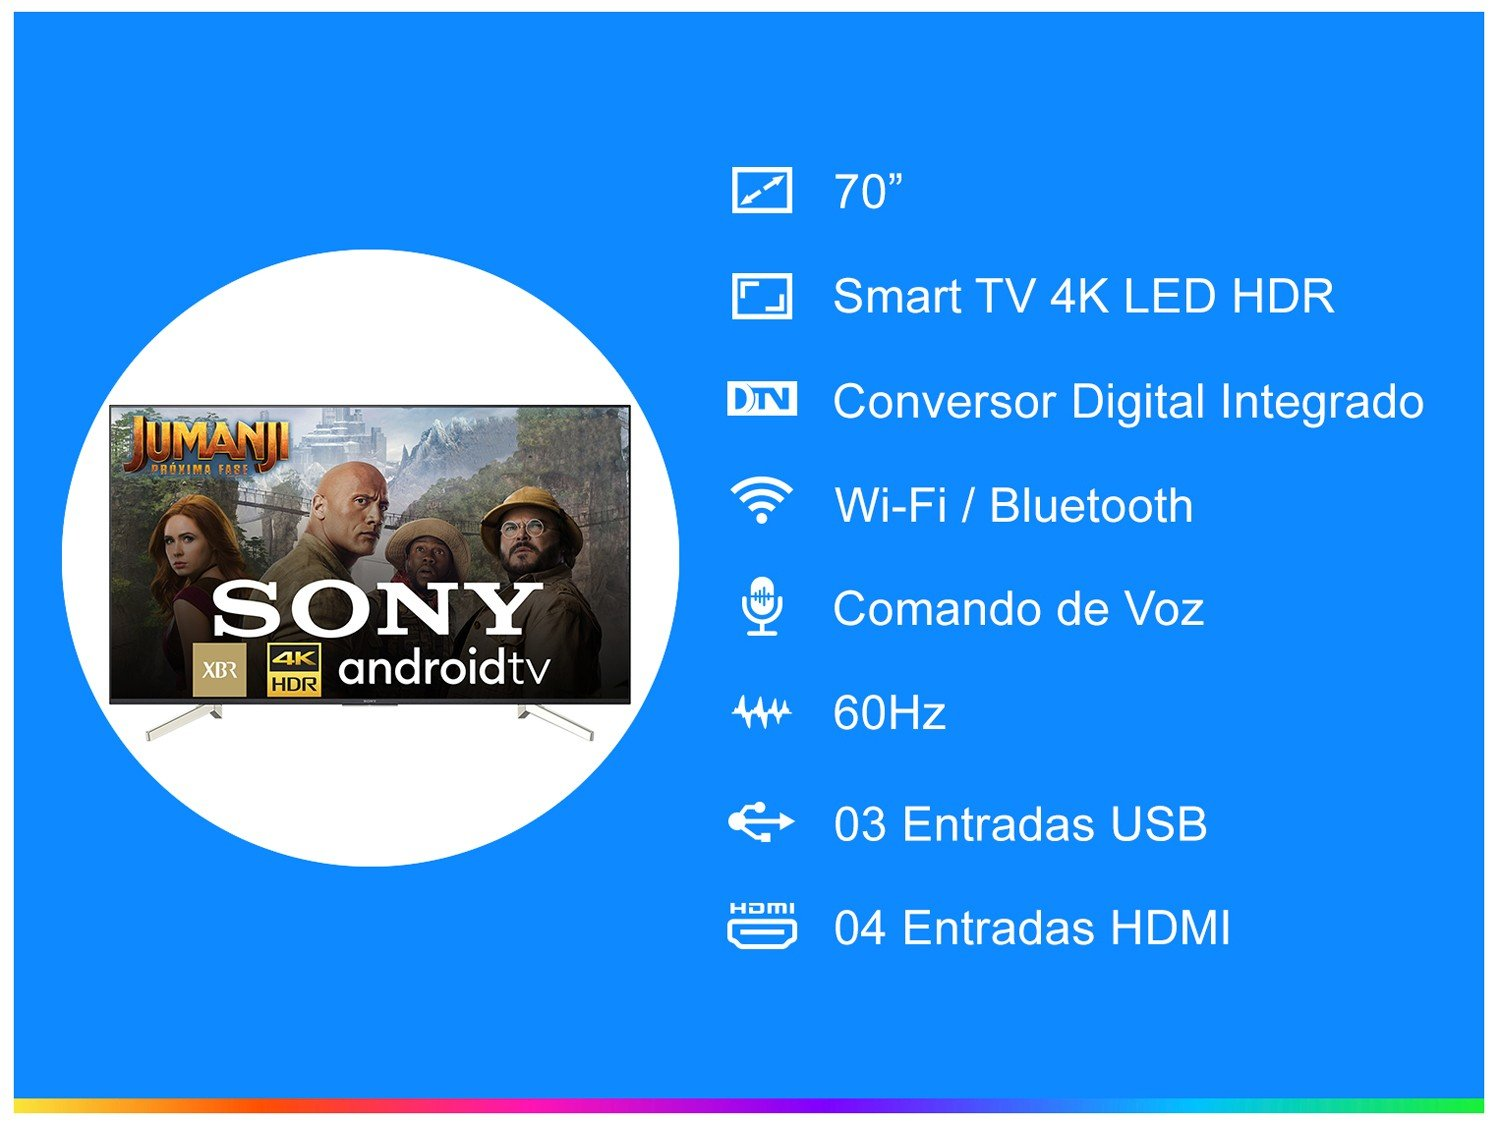 Foto 2 - Smart TV 4K LED 70 Sony XBR-70X835F Android - Wi-Fi HDR 4 HDMI 3 USB